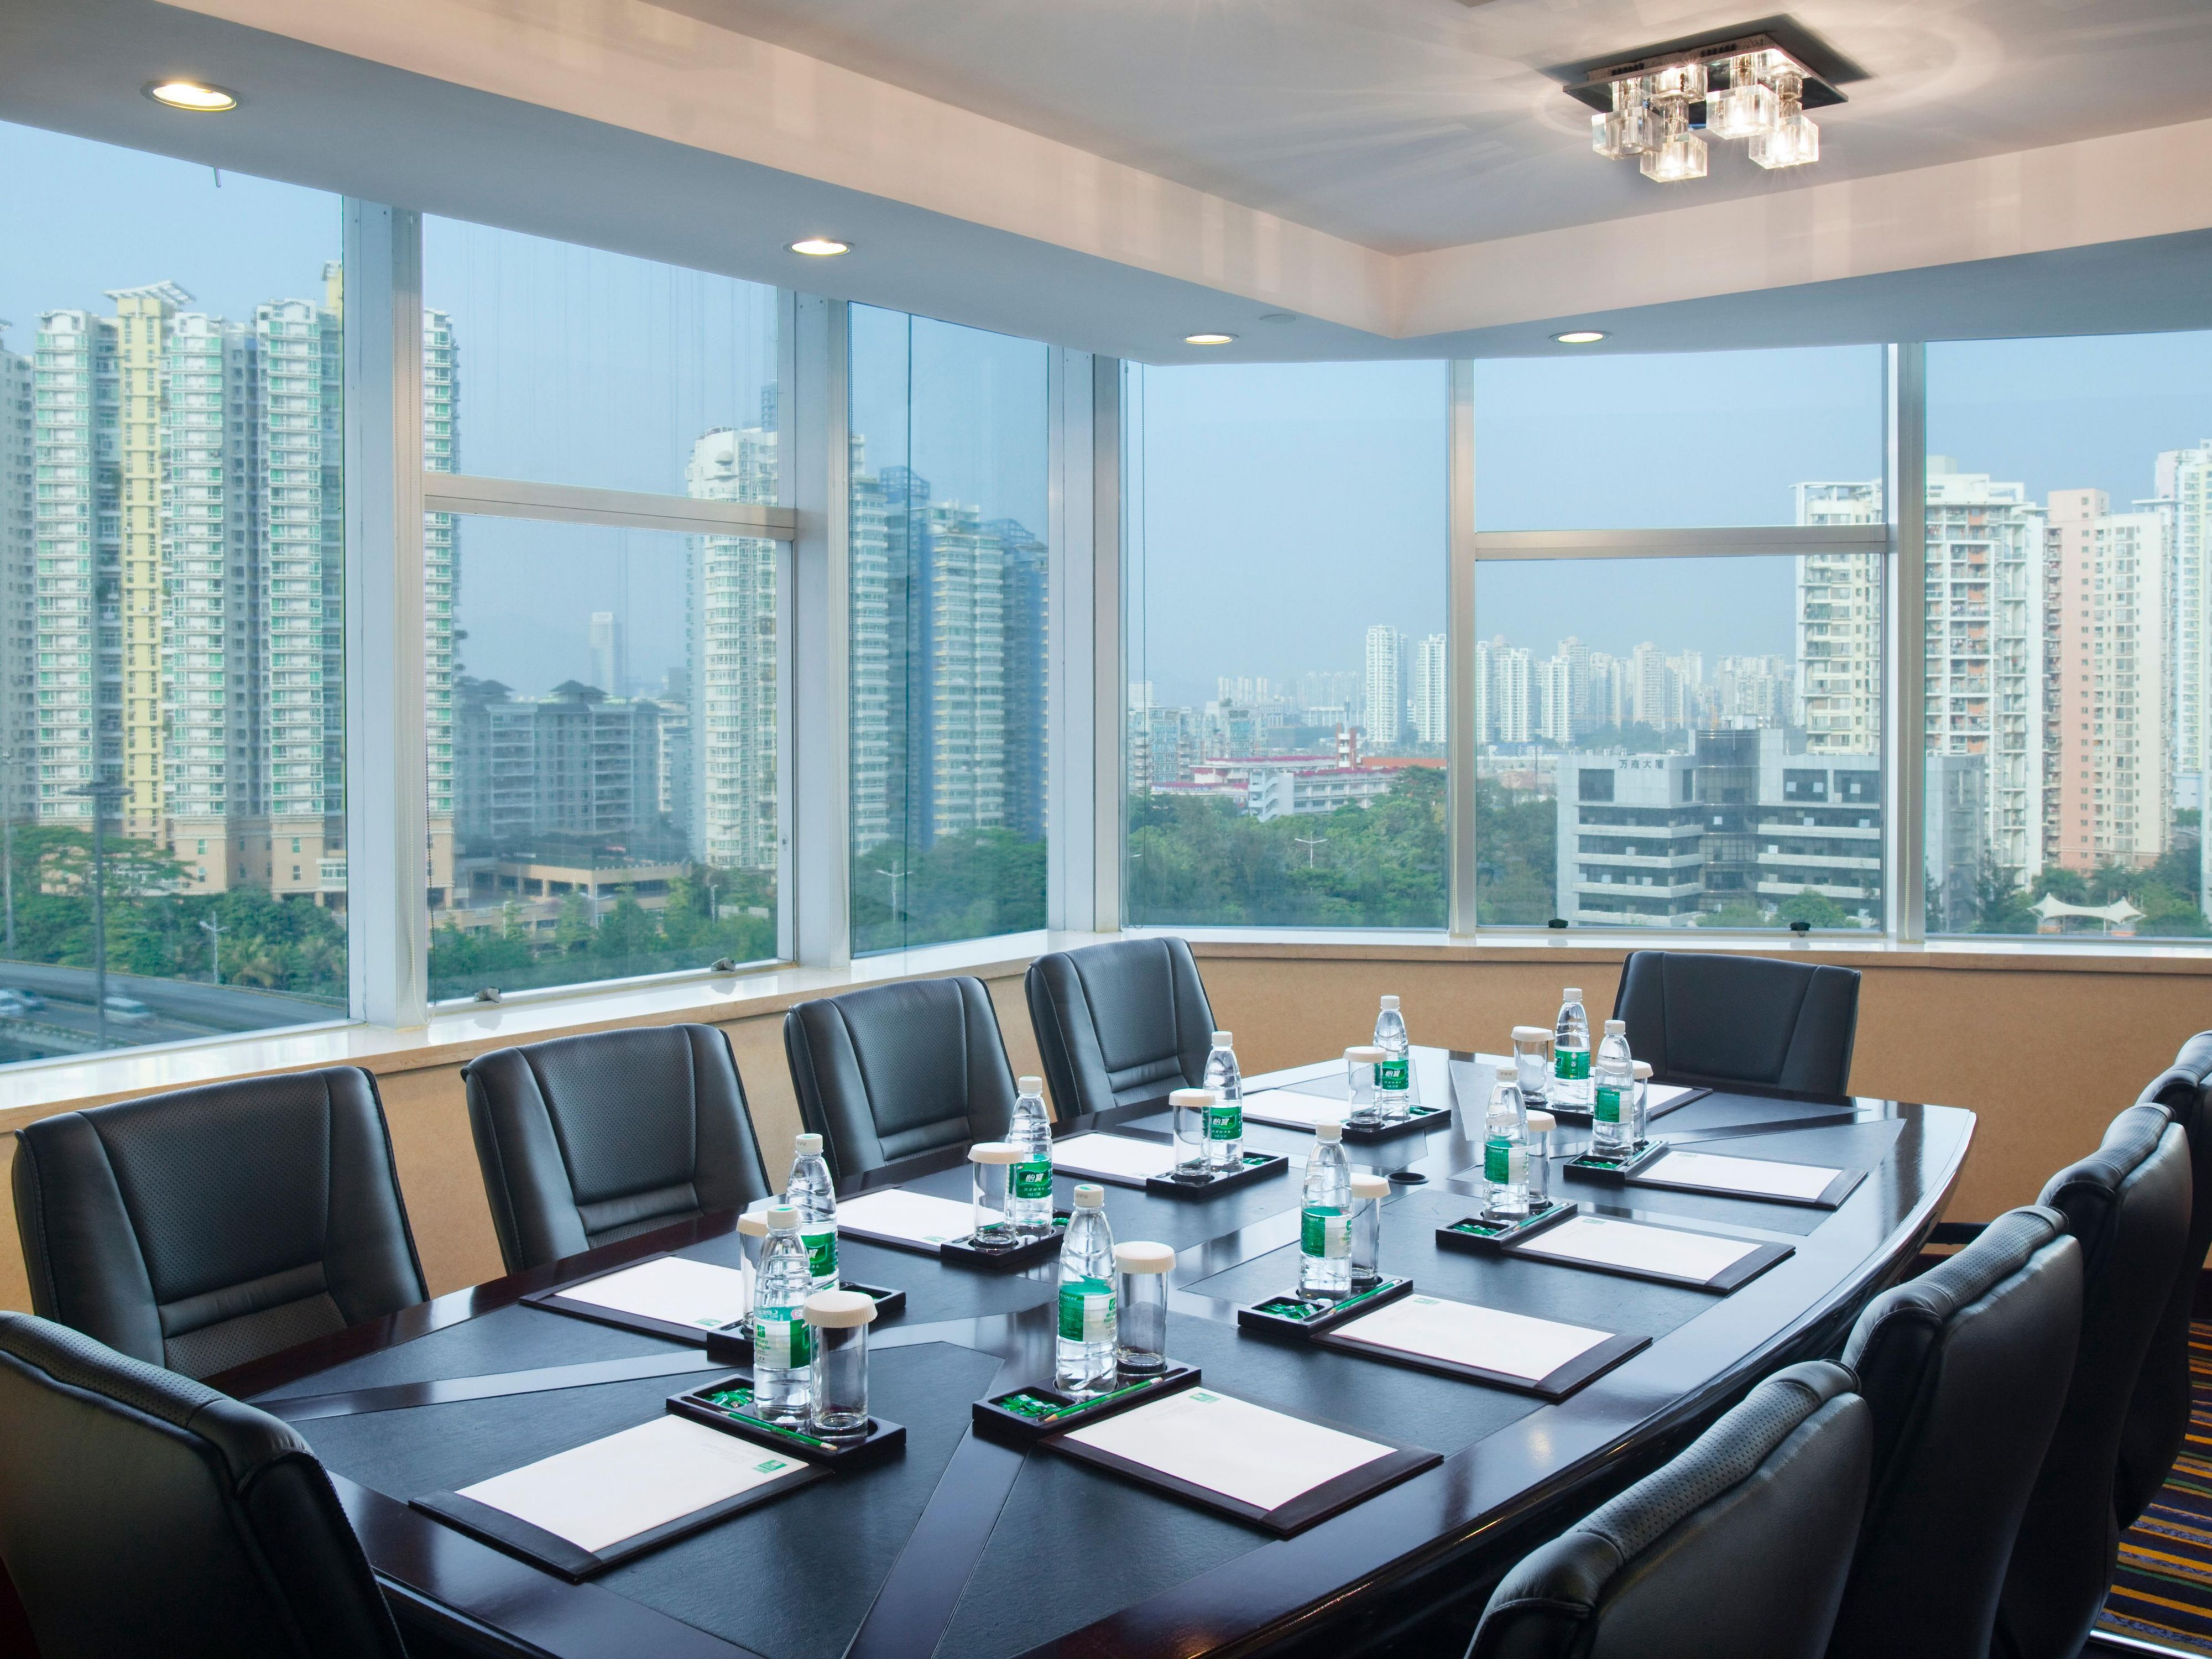 Holiday Inn Shenzhen Donghua Executive floor meeting room